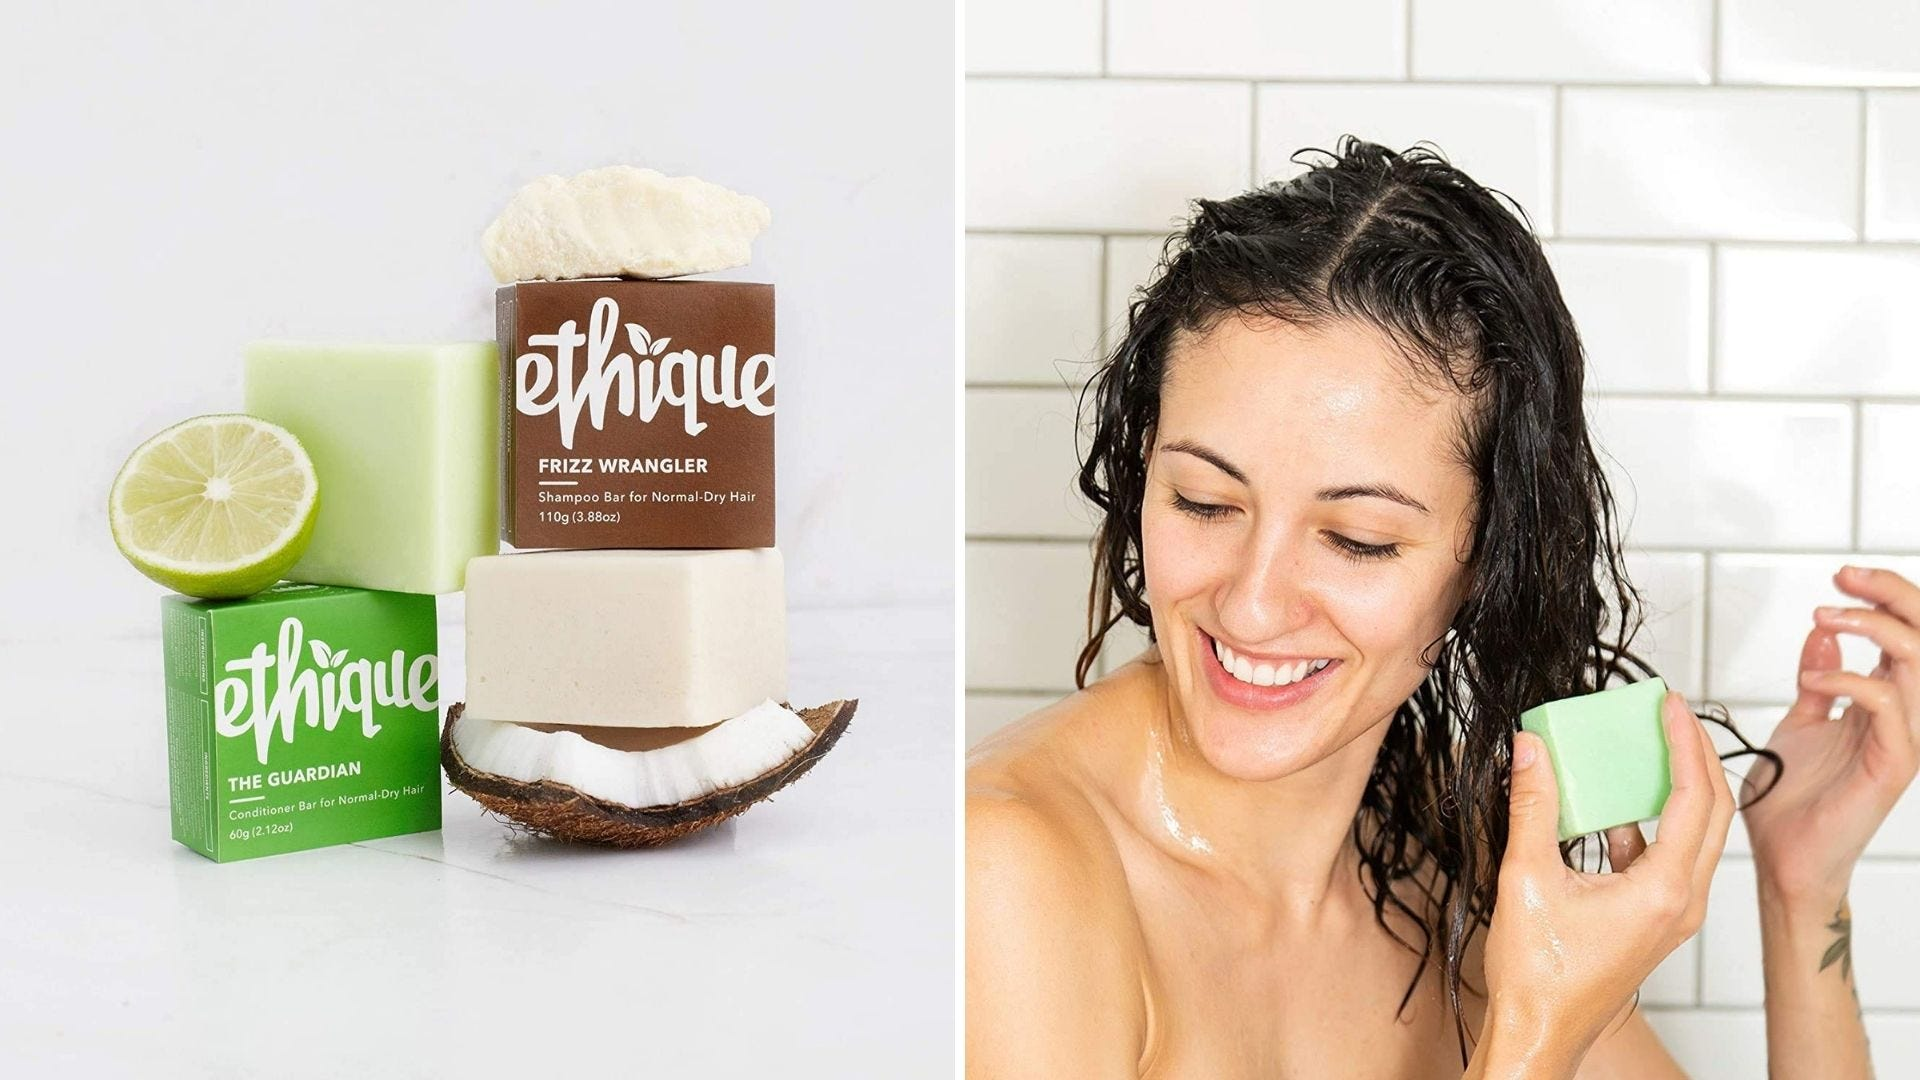 A shampoo and conditioner bar set and a woman washes her hair with a shampoo bar